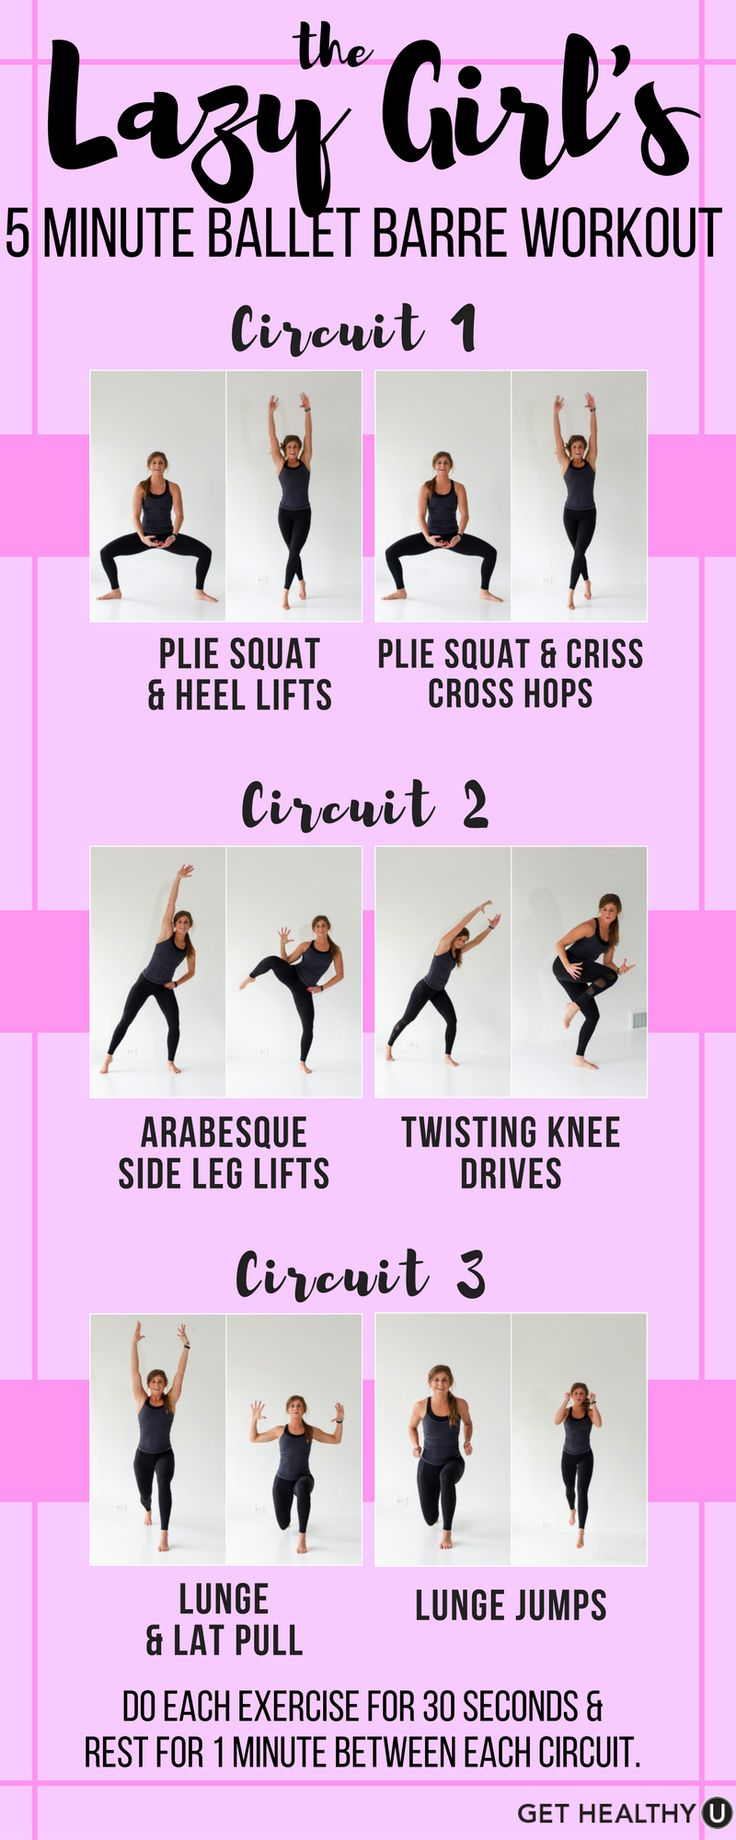 Try this quick HIIT Ballet Barre circuit workout for that strong dancers body you've been dreaming of! This Lazy Girl's 5 Minute Ballet Barre Workout is a quick & simple HIIT workout routine that will help get you stronger, leaner, and more toned!